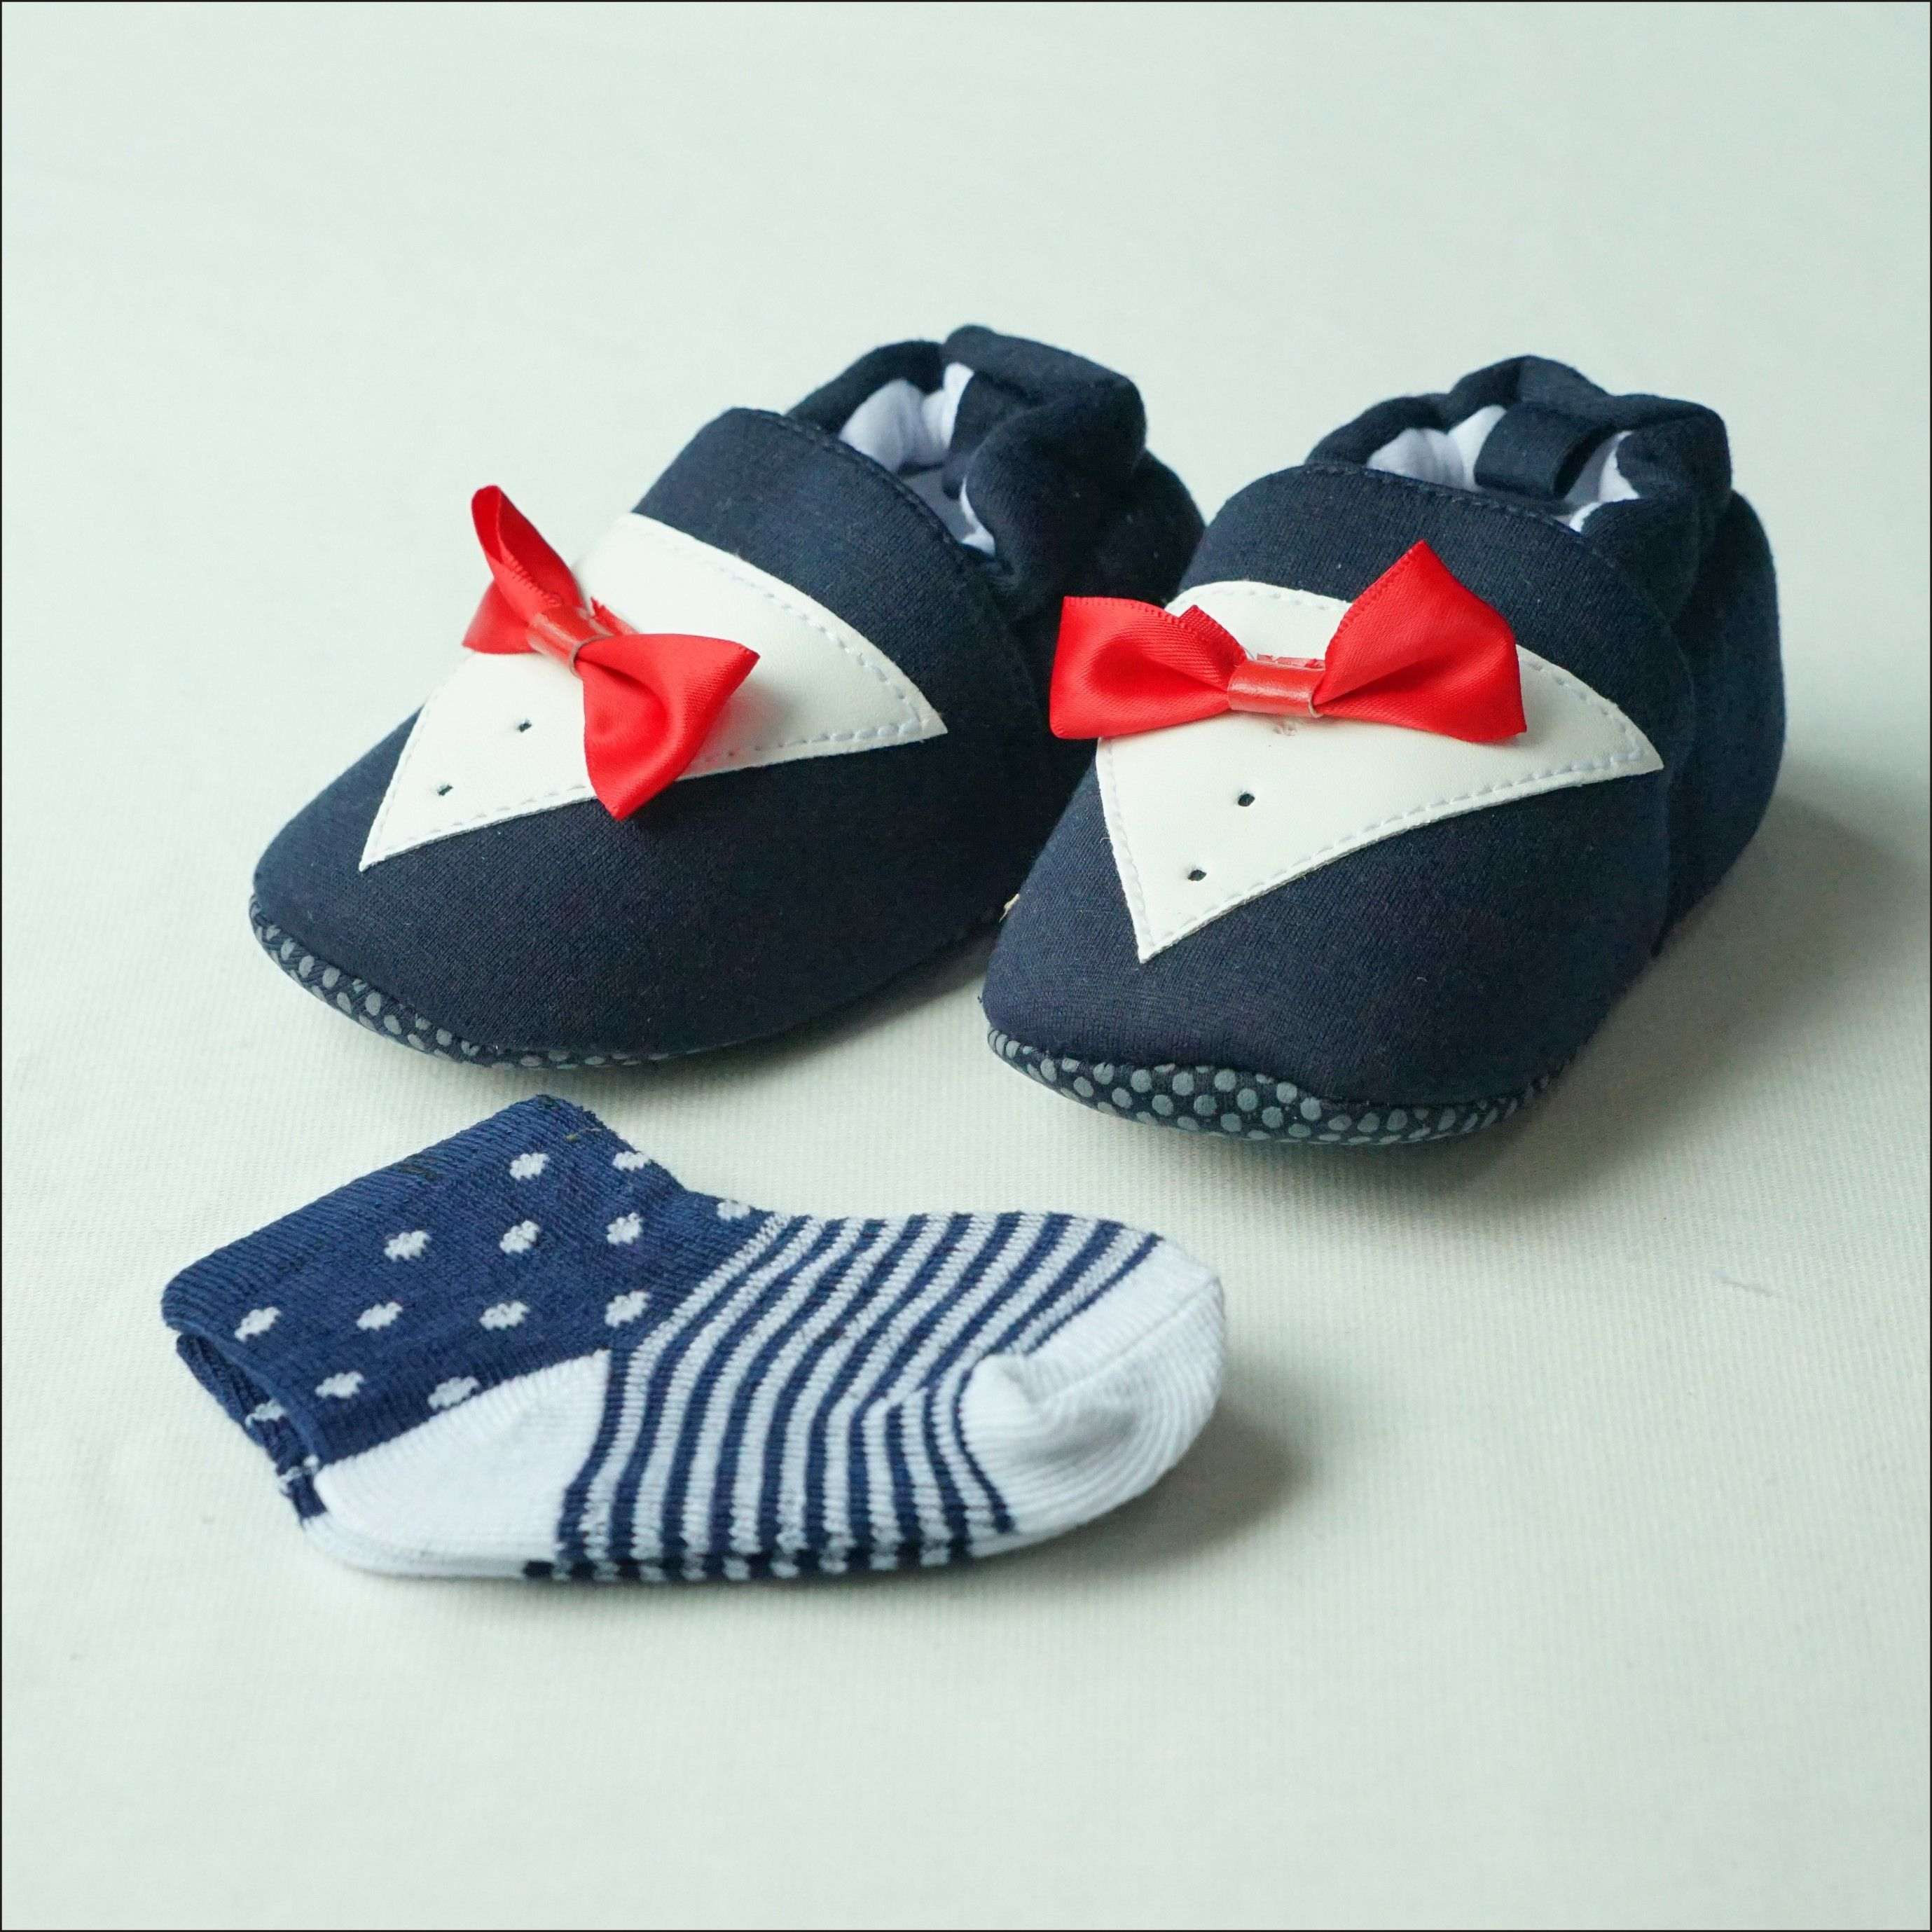 Smart Baby Baby Shoes with Socks Set